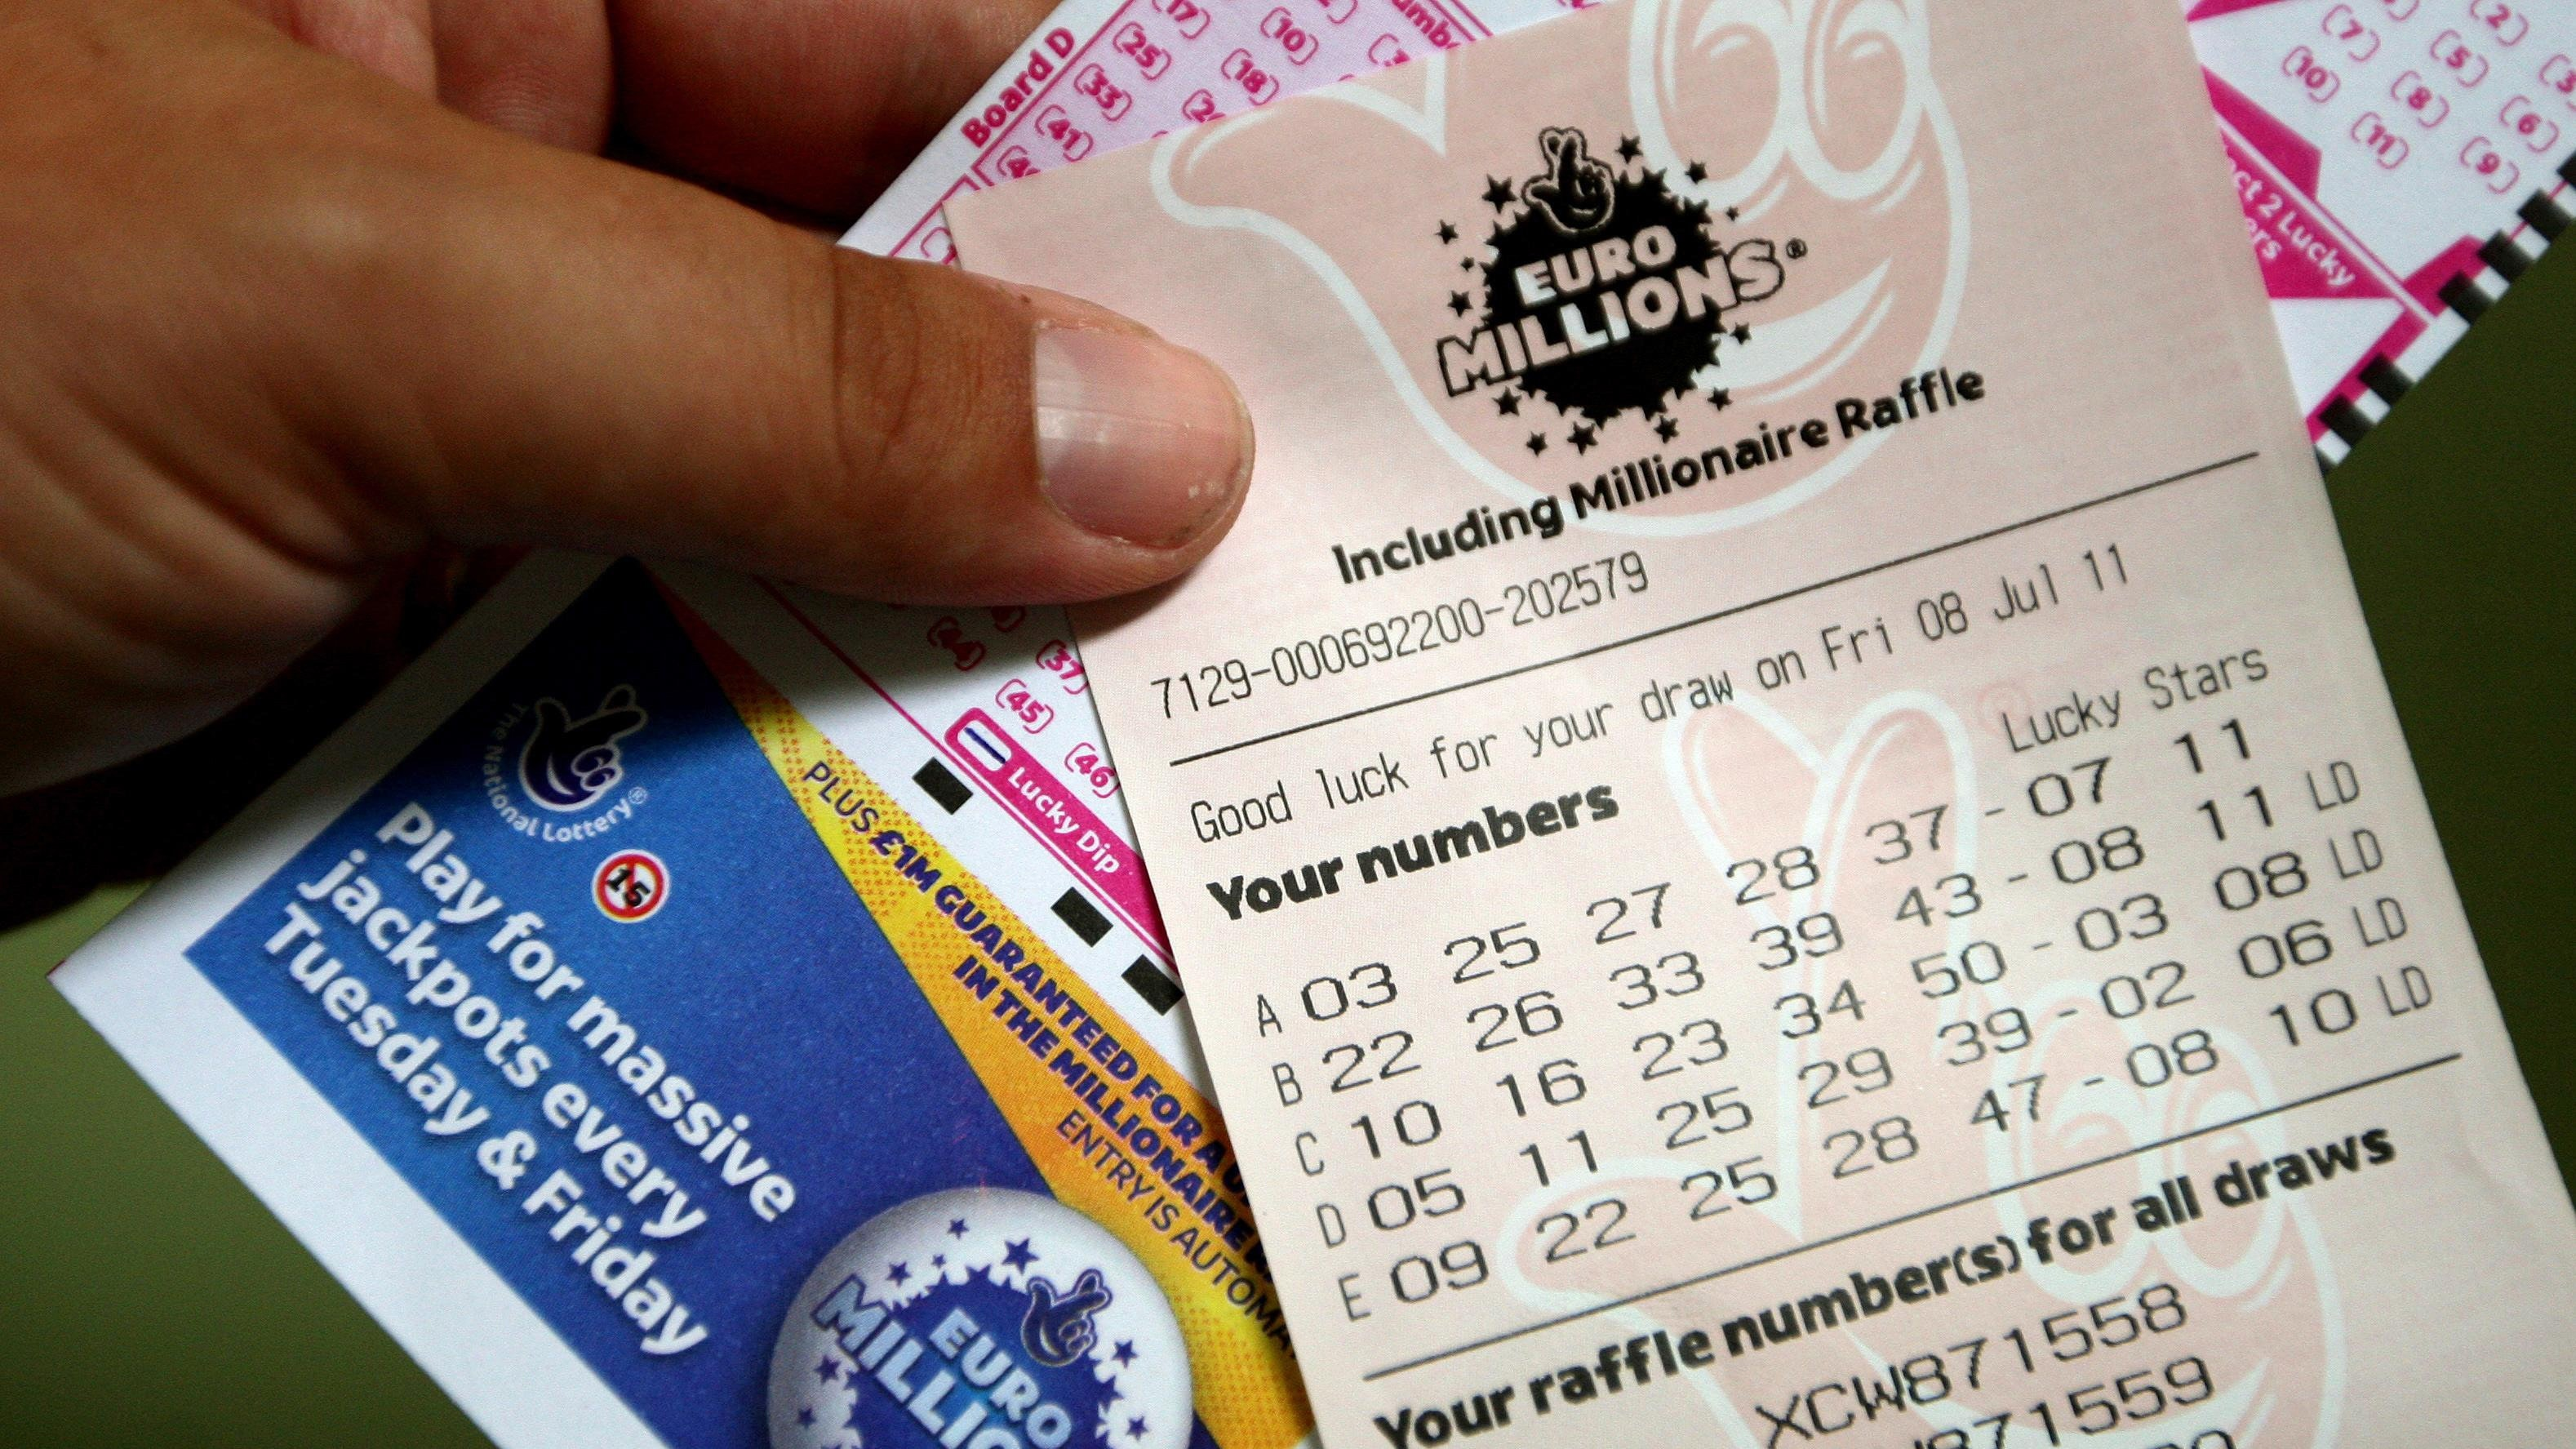 Holy sh*t - someone in Ireland just won the €175 million EuroMillions jackpot